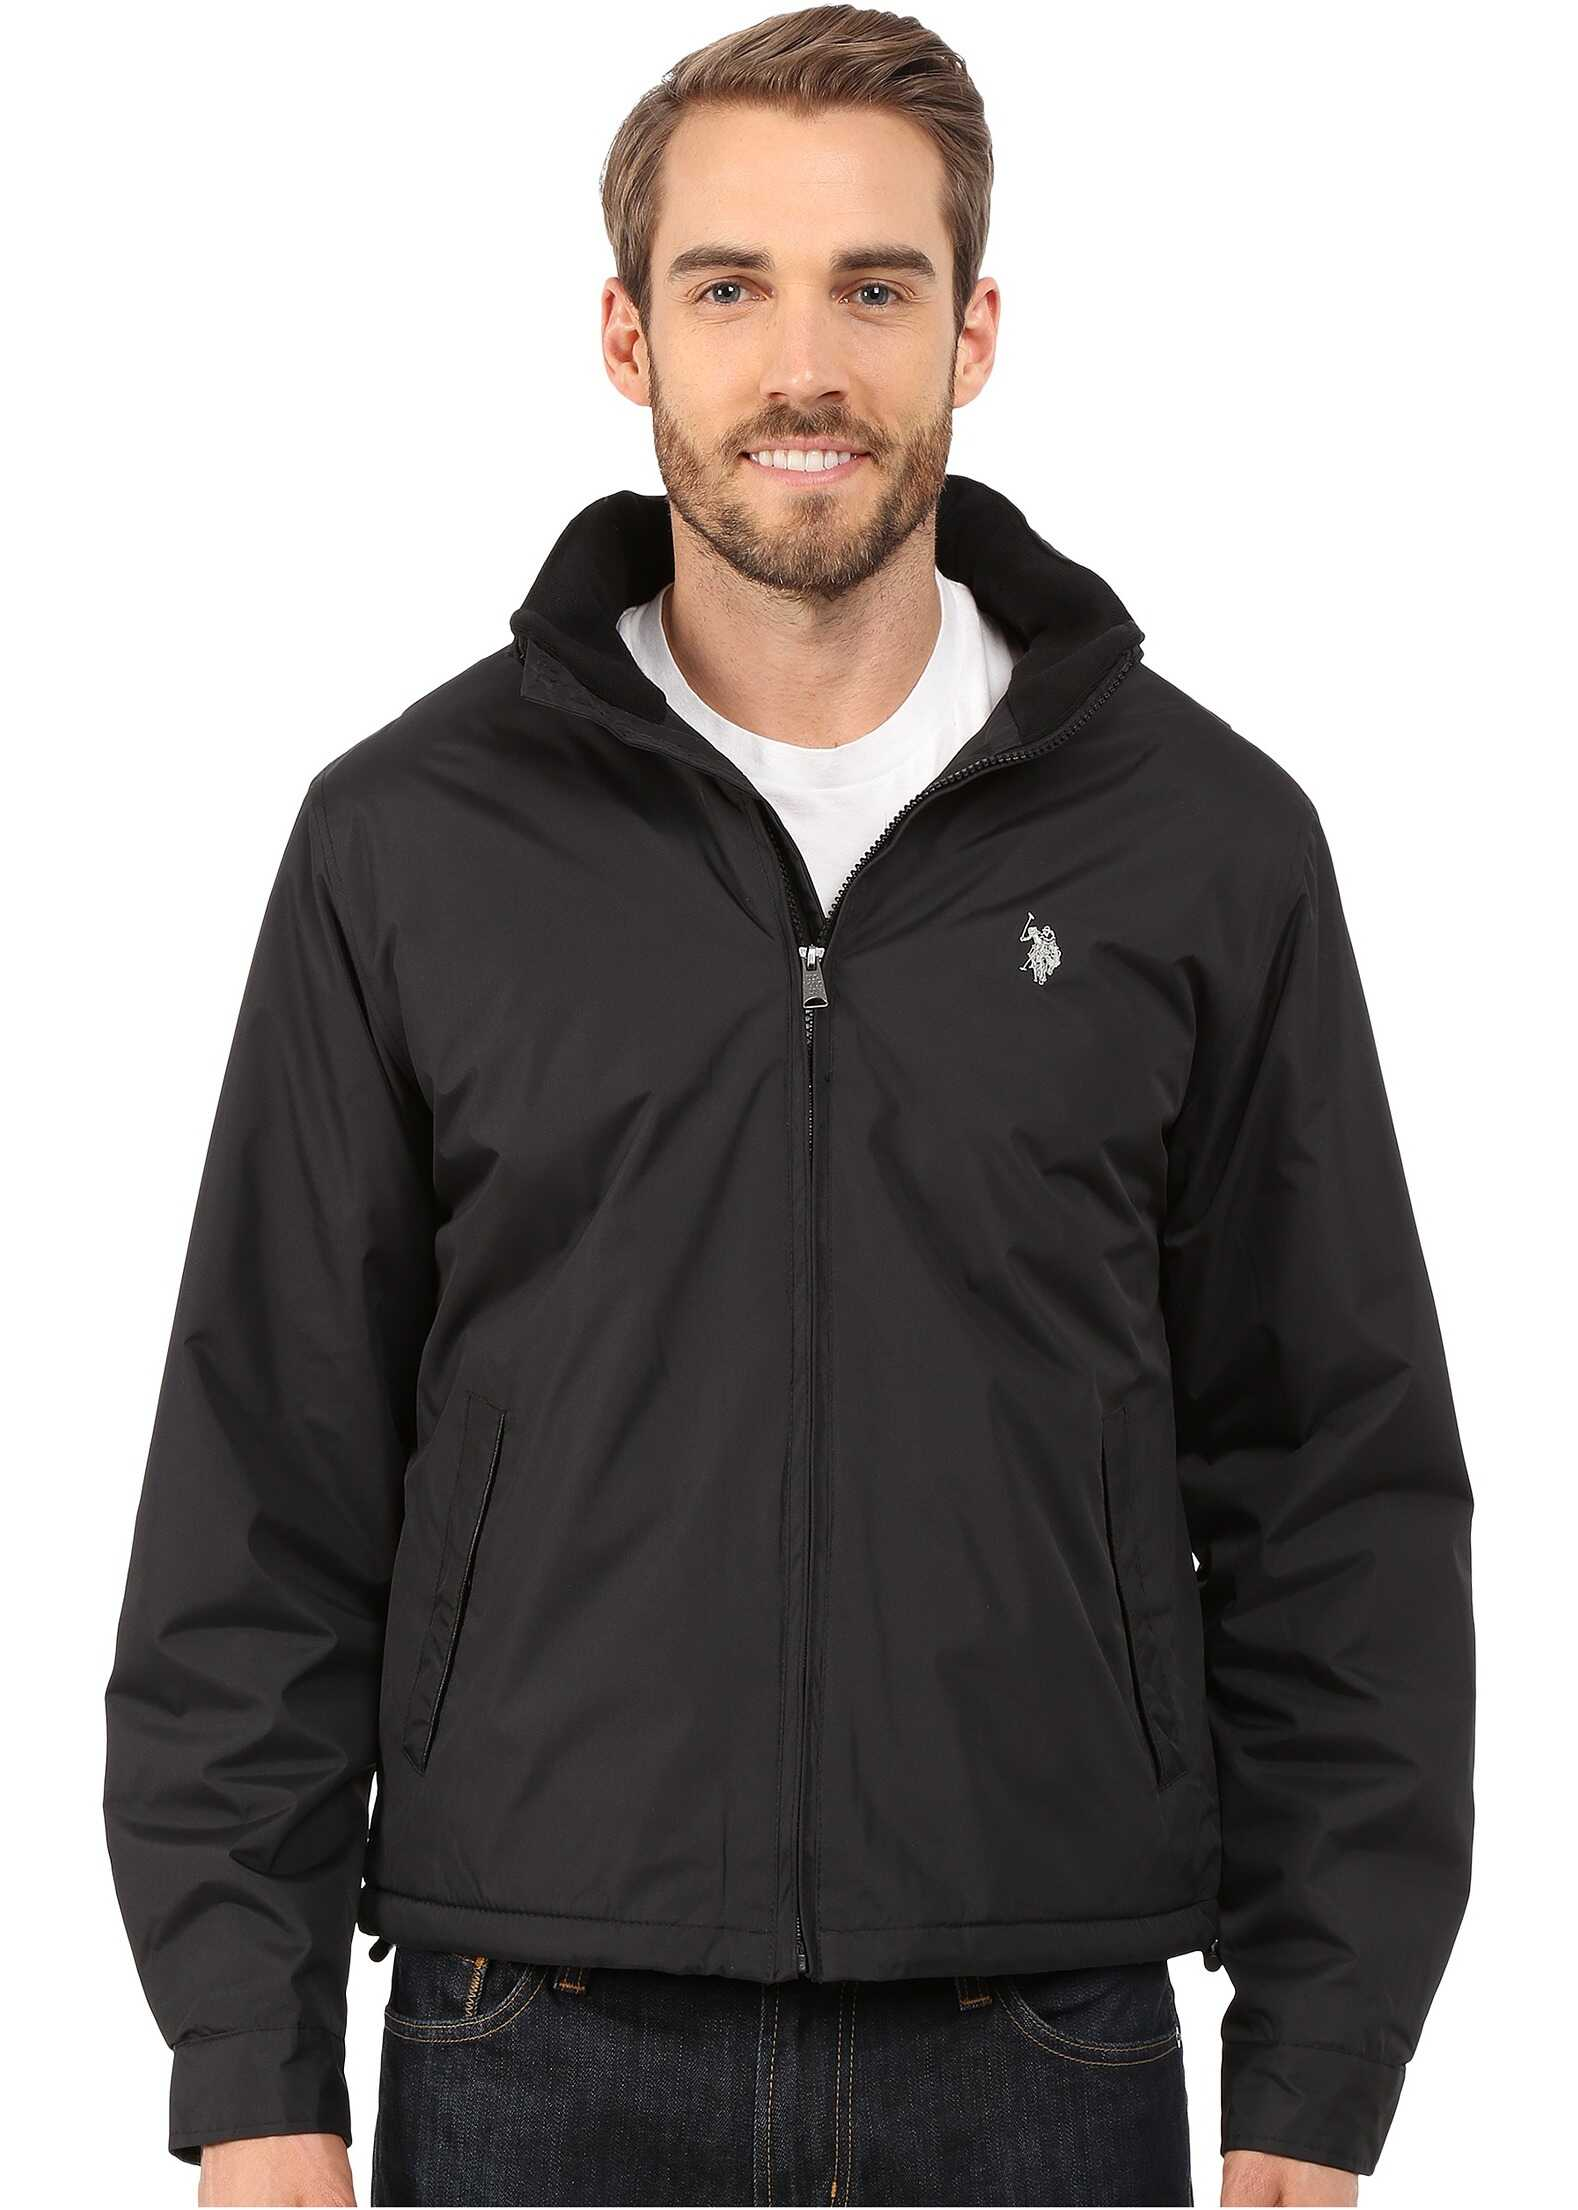 U.S. POLO ASSN. Mock Neck Jacket Polar Fleece Lined Black